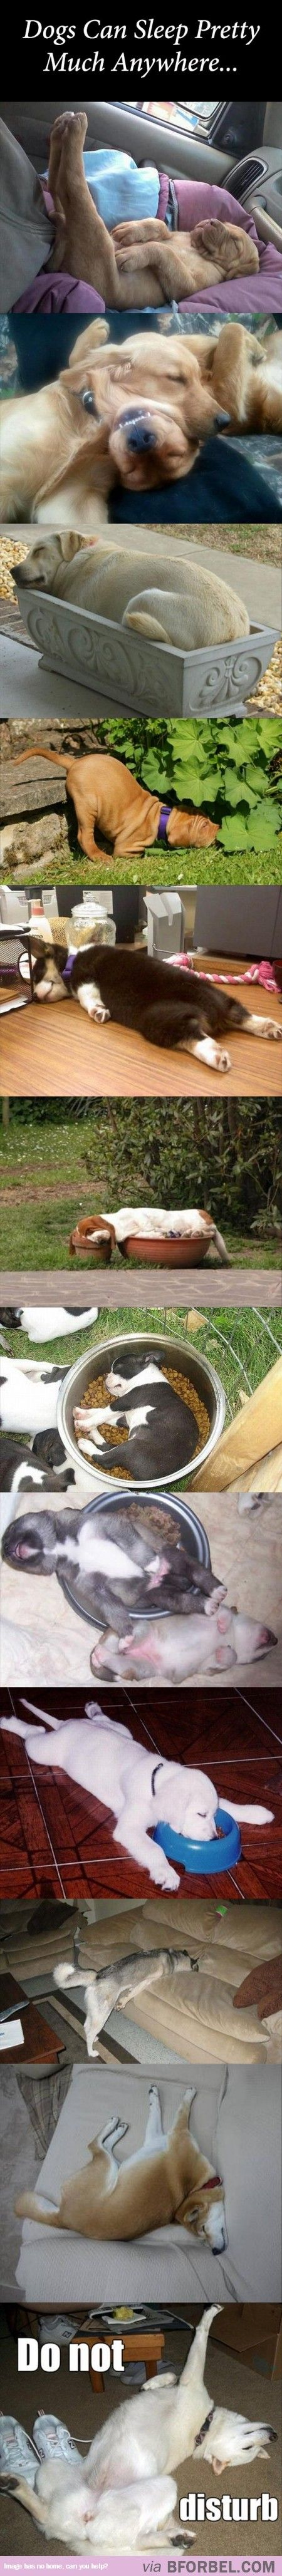 Dogs Can Sleep Anywhere, In Any Position..: